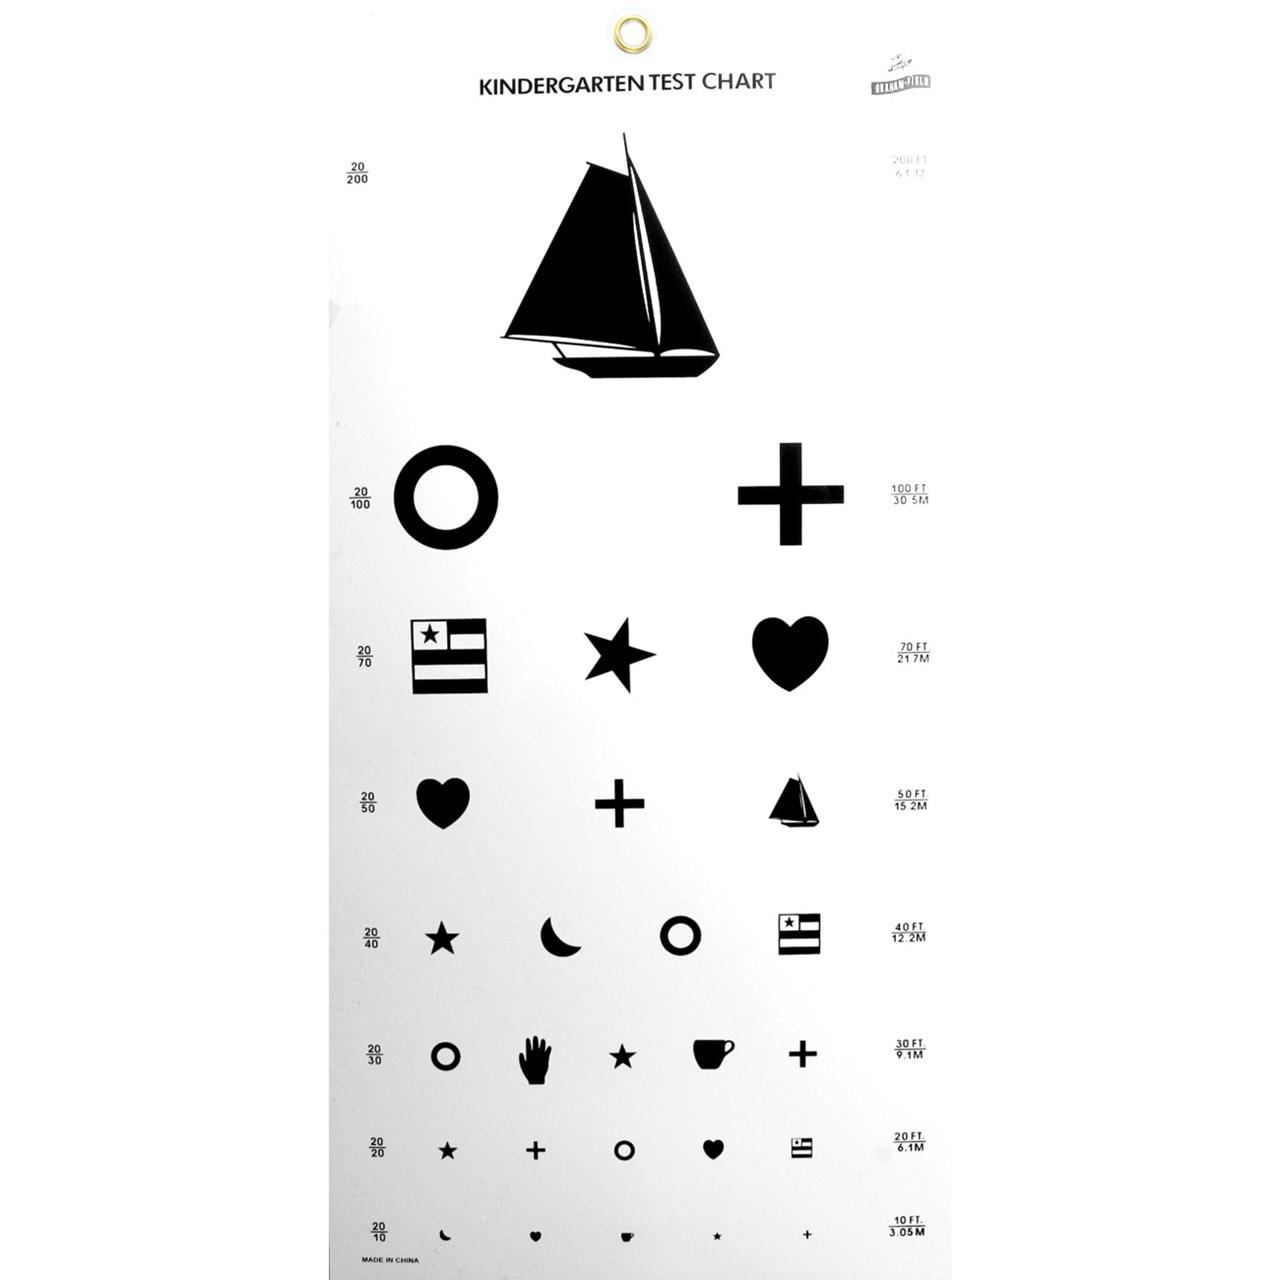 image about Snellen Chart Printable referred to as Kid Eye Verify Chart Printable